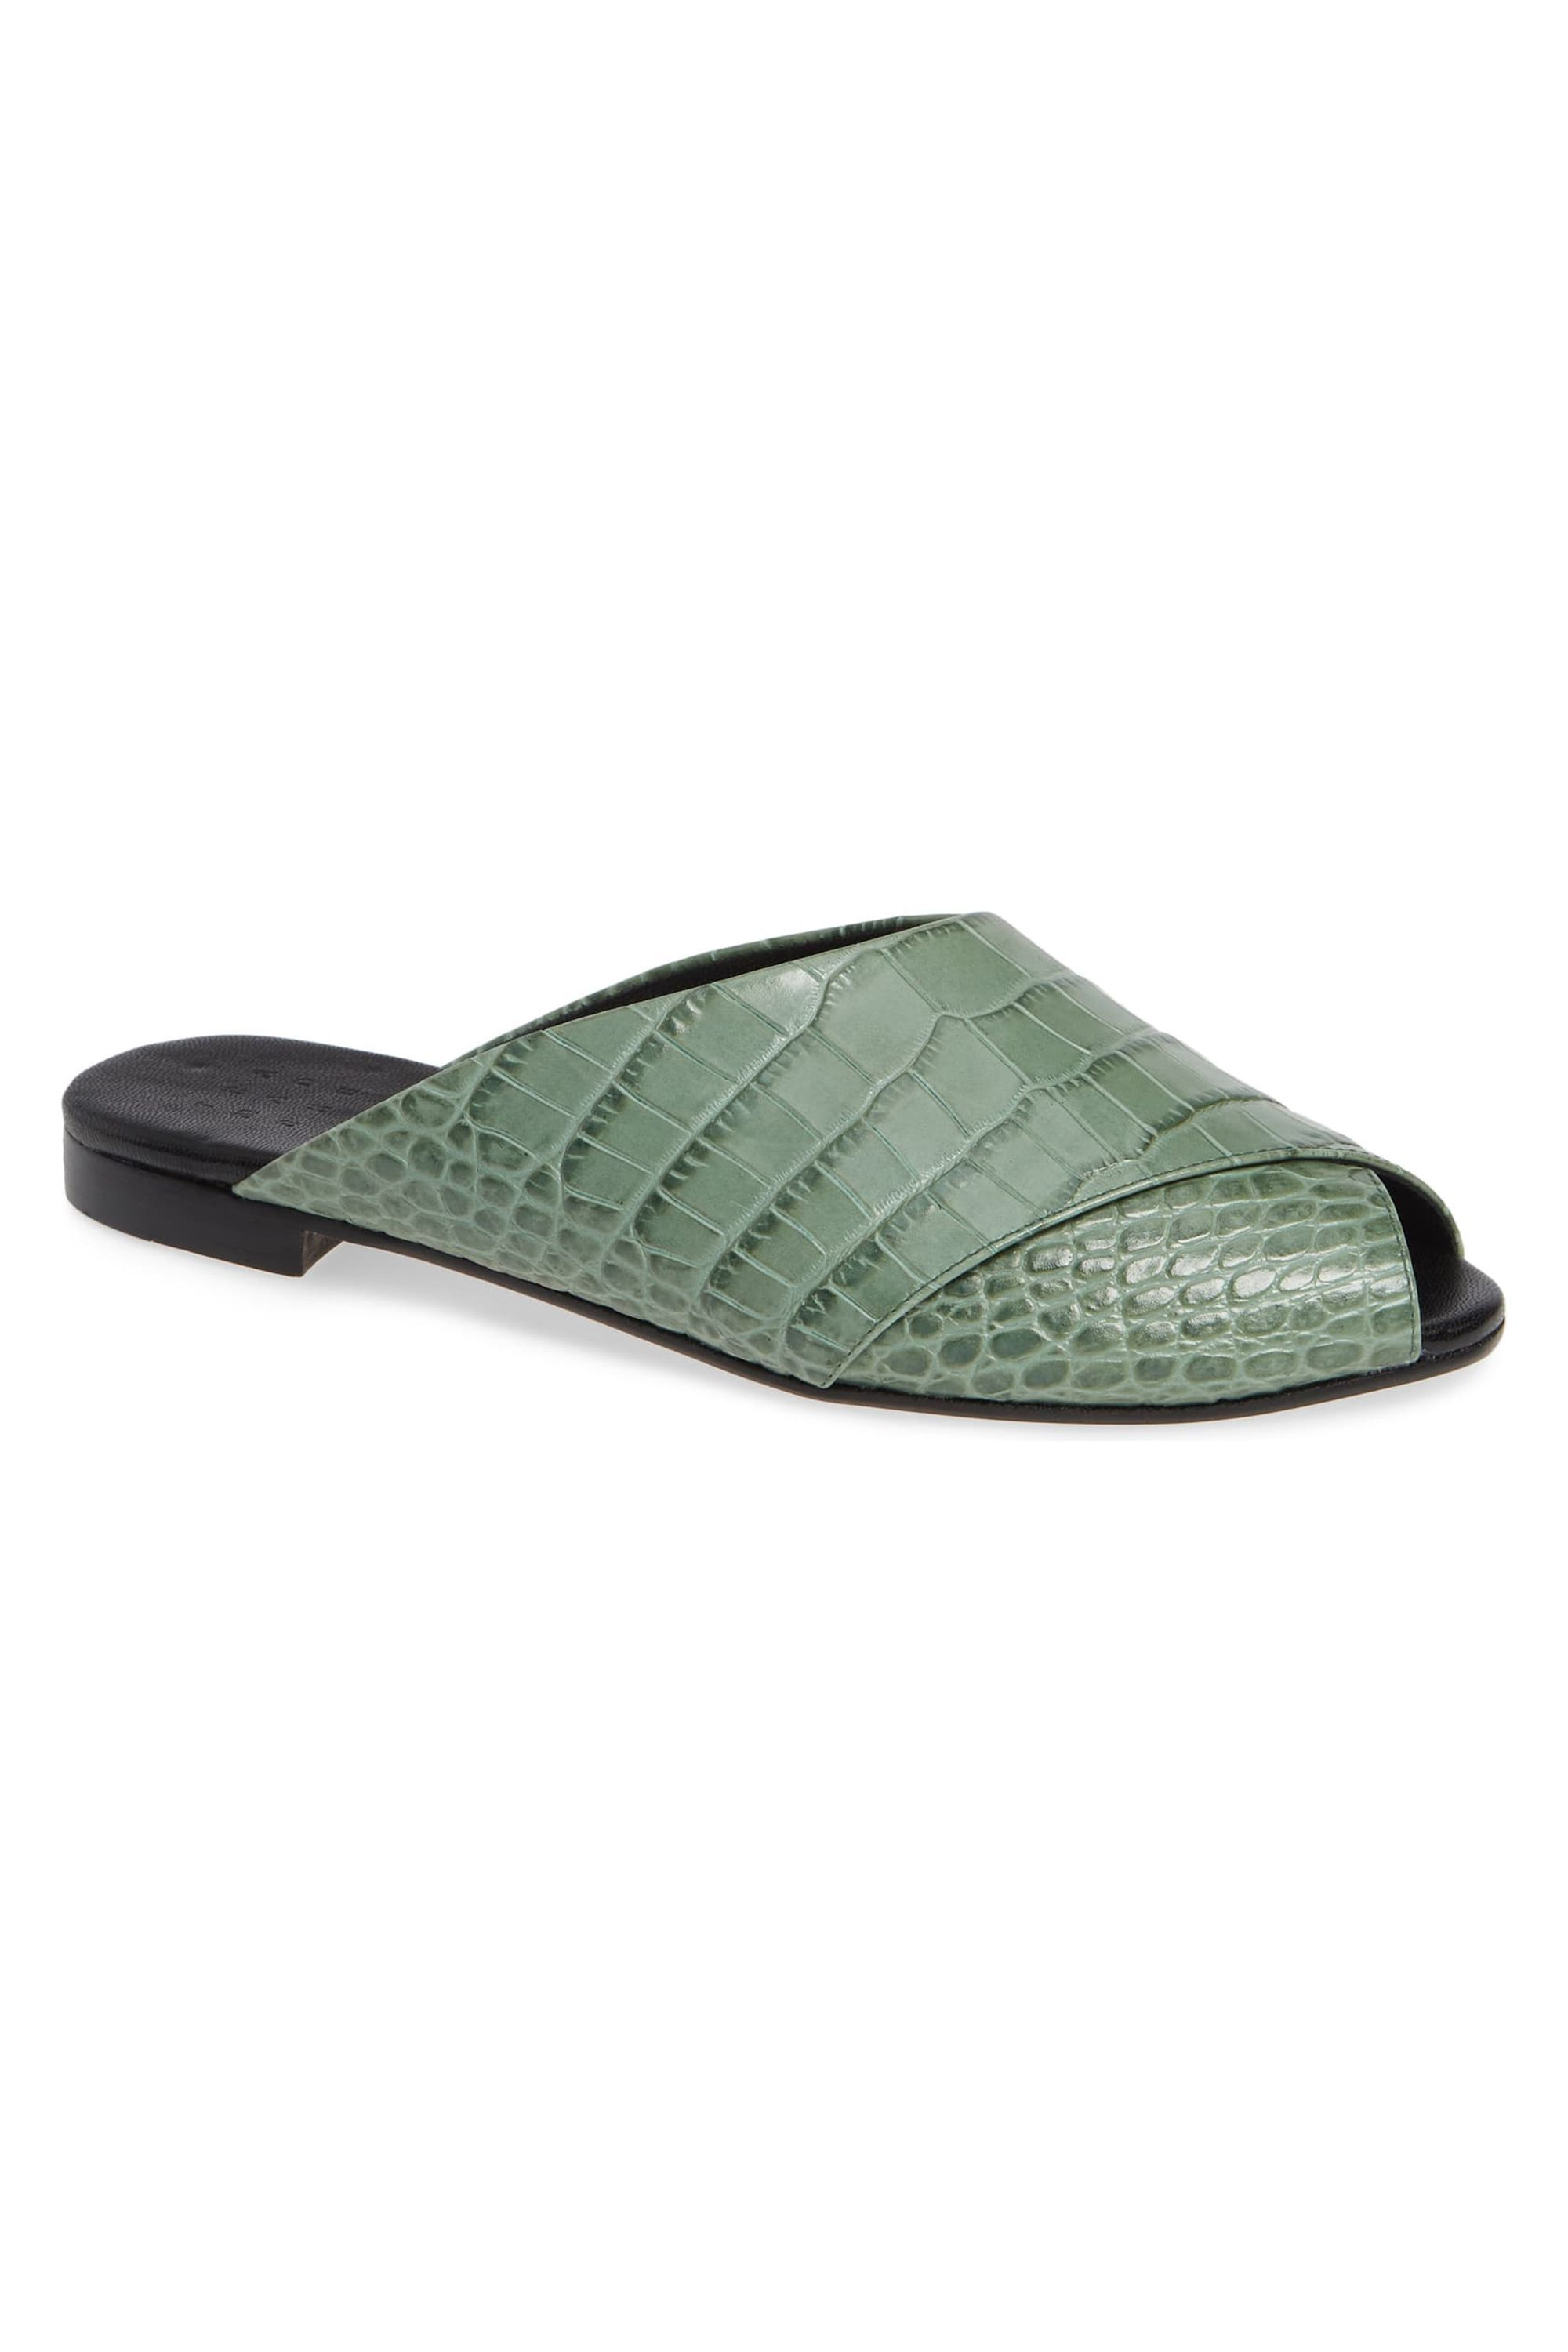 Pajama Slide Sandal Trademark, $178.80 nordstrom.com SHOP NOW